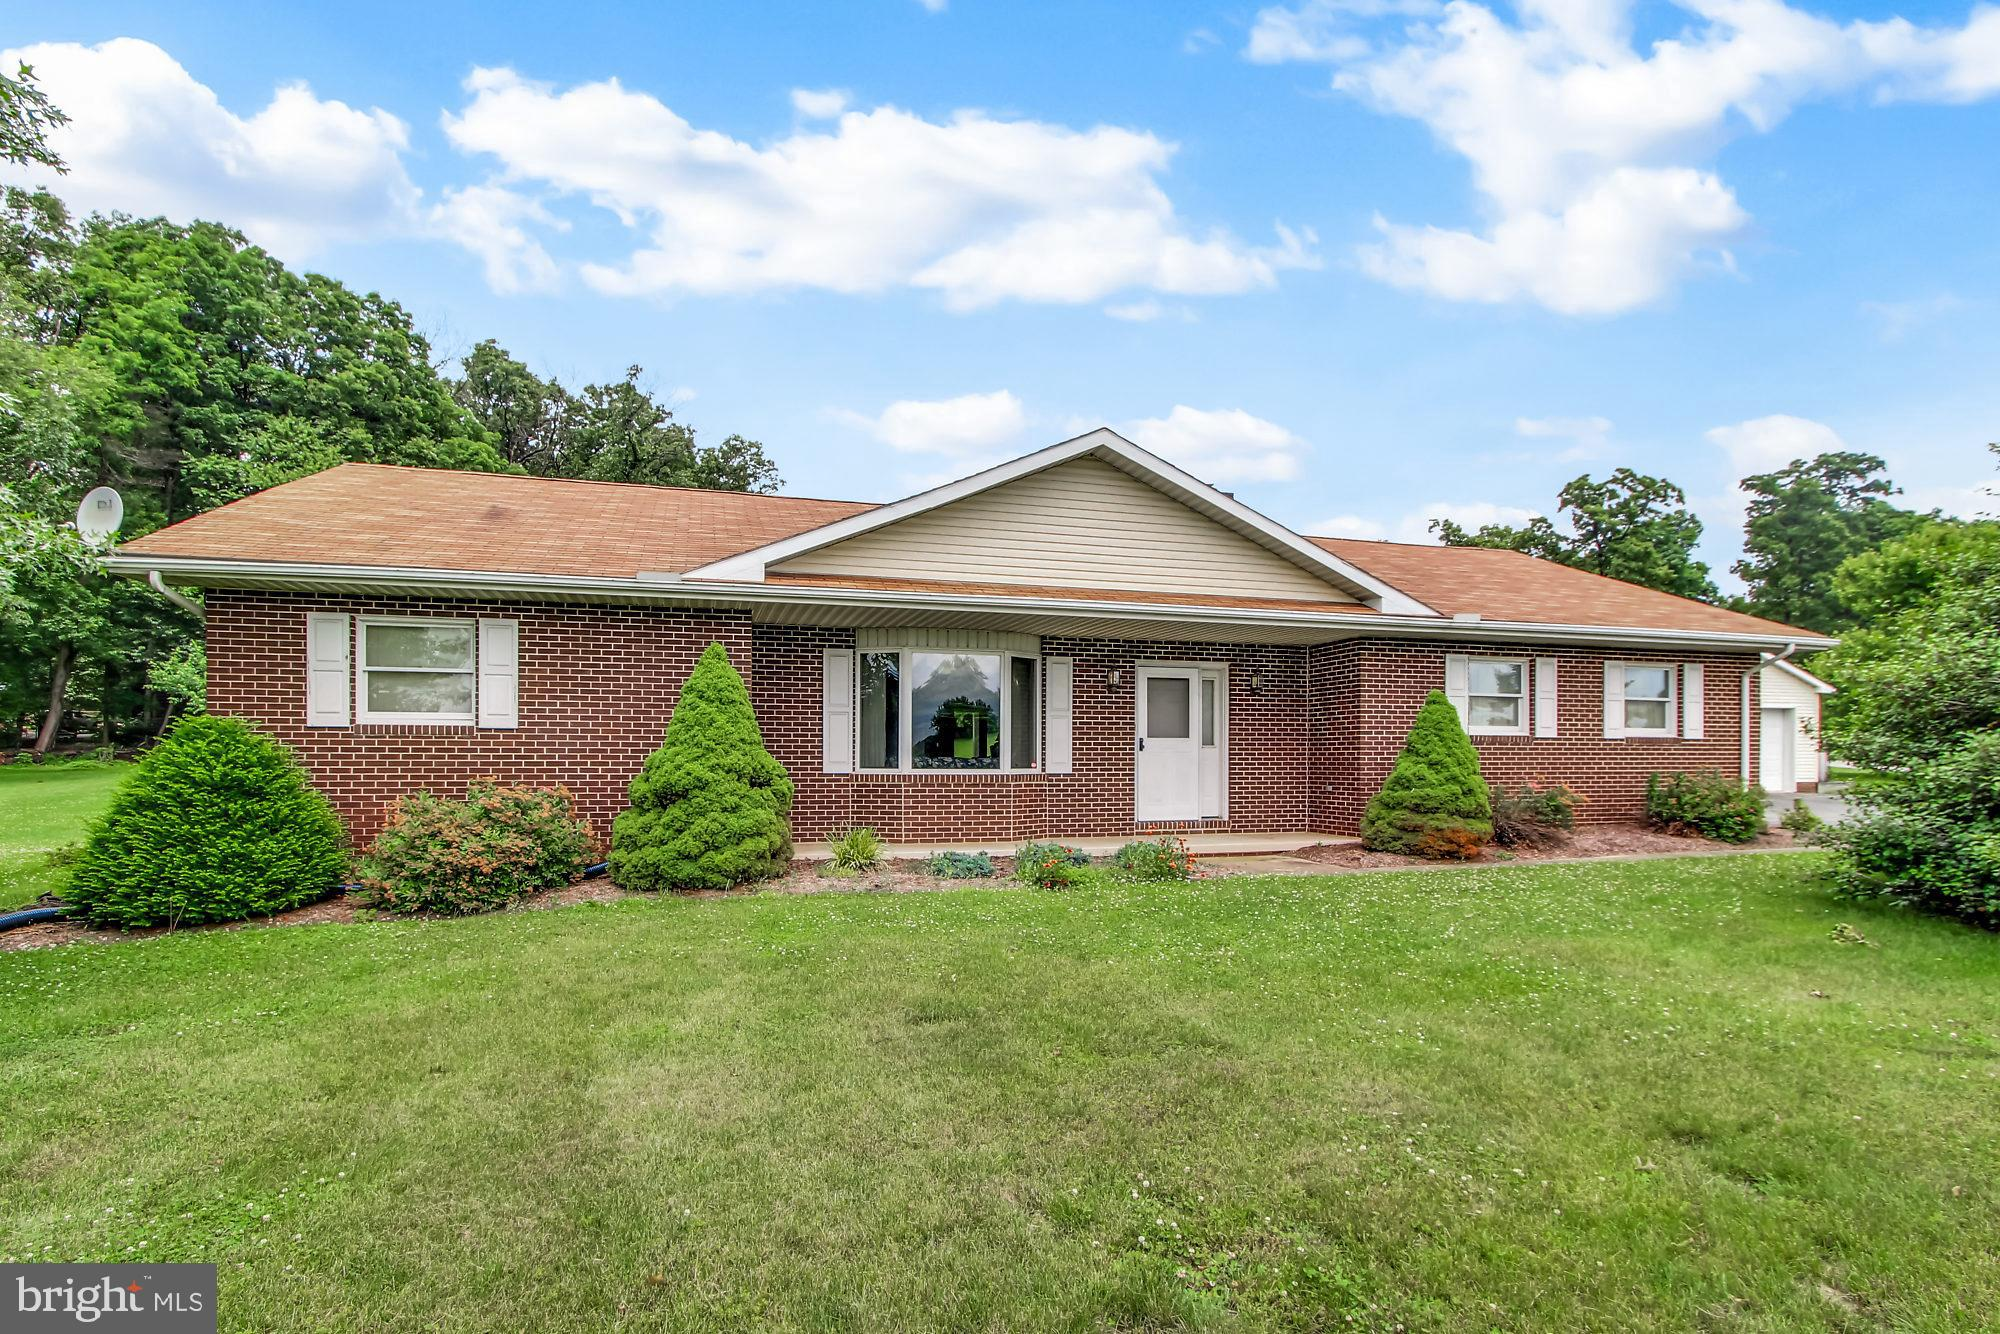 30 EDITH DRIVE, WINDSOR, PA 17366